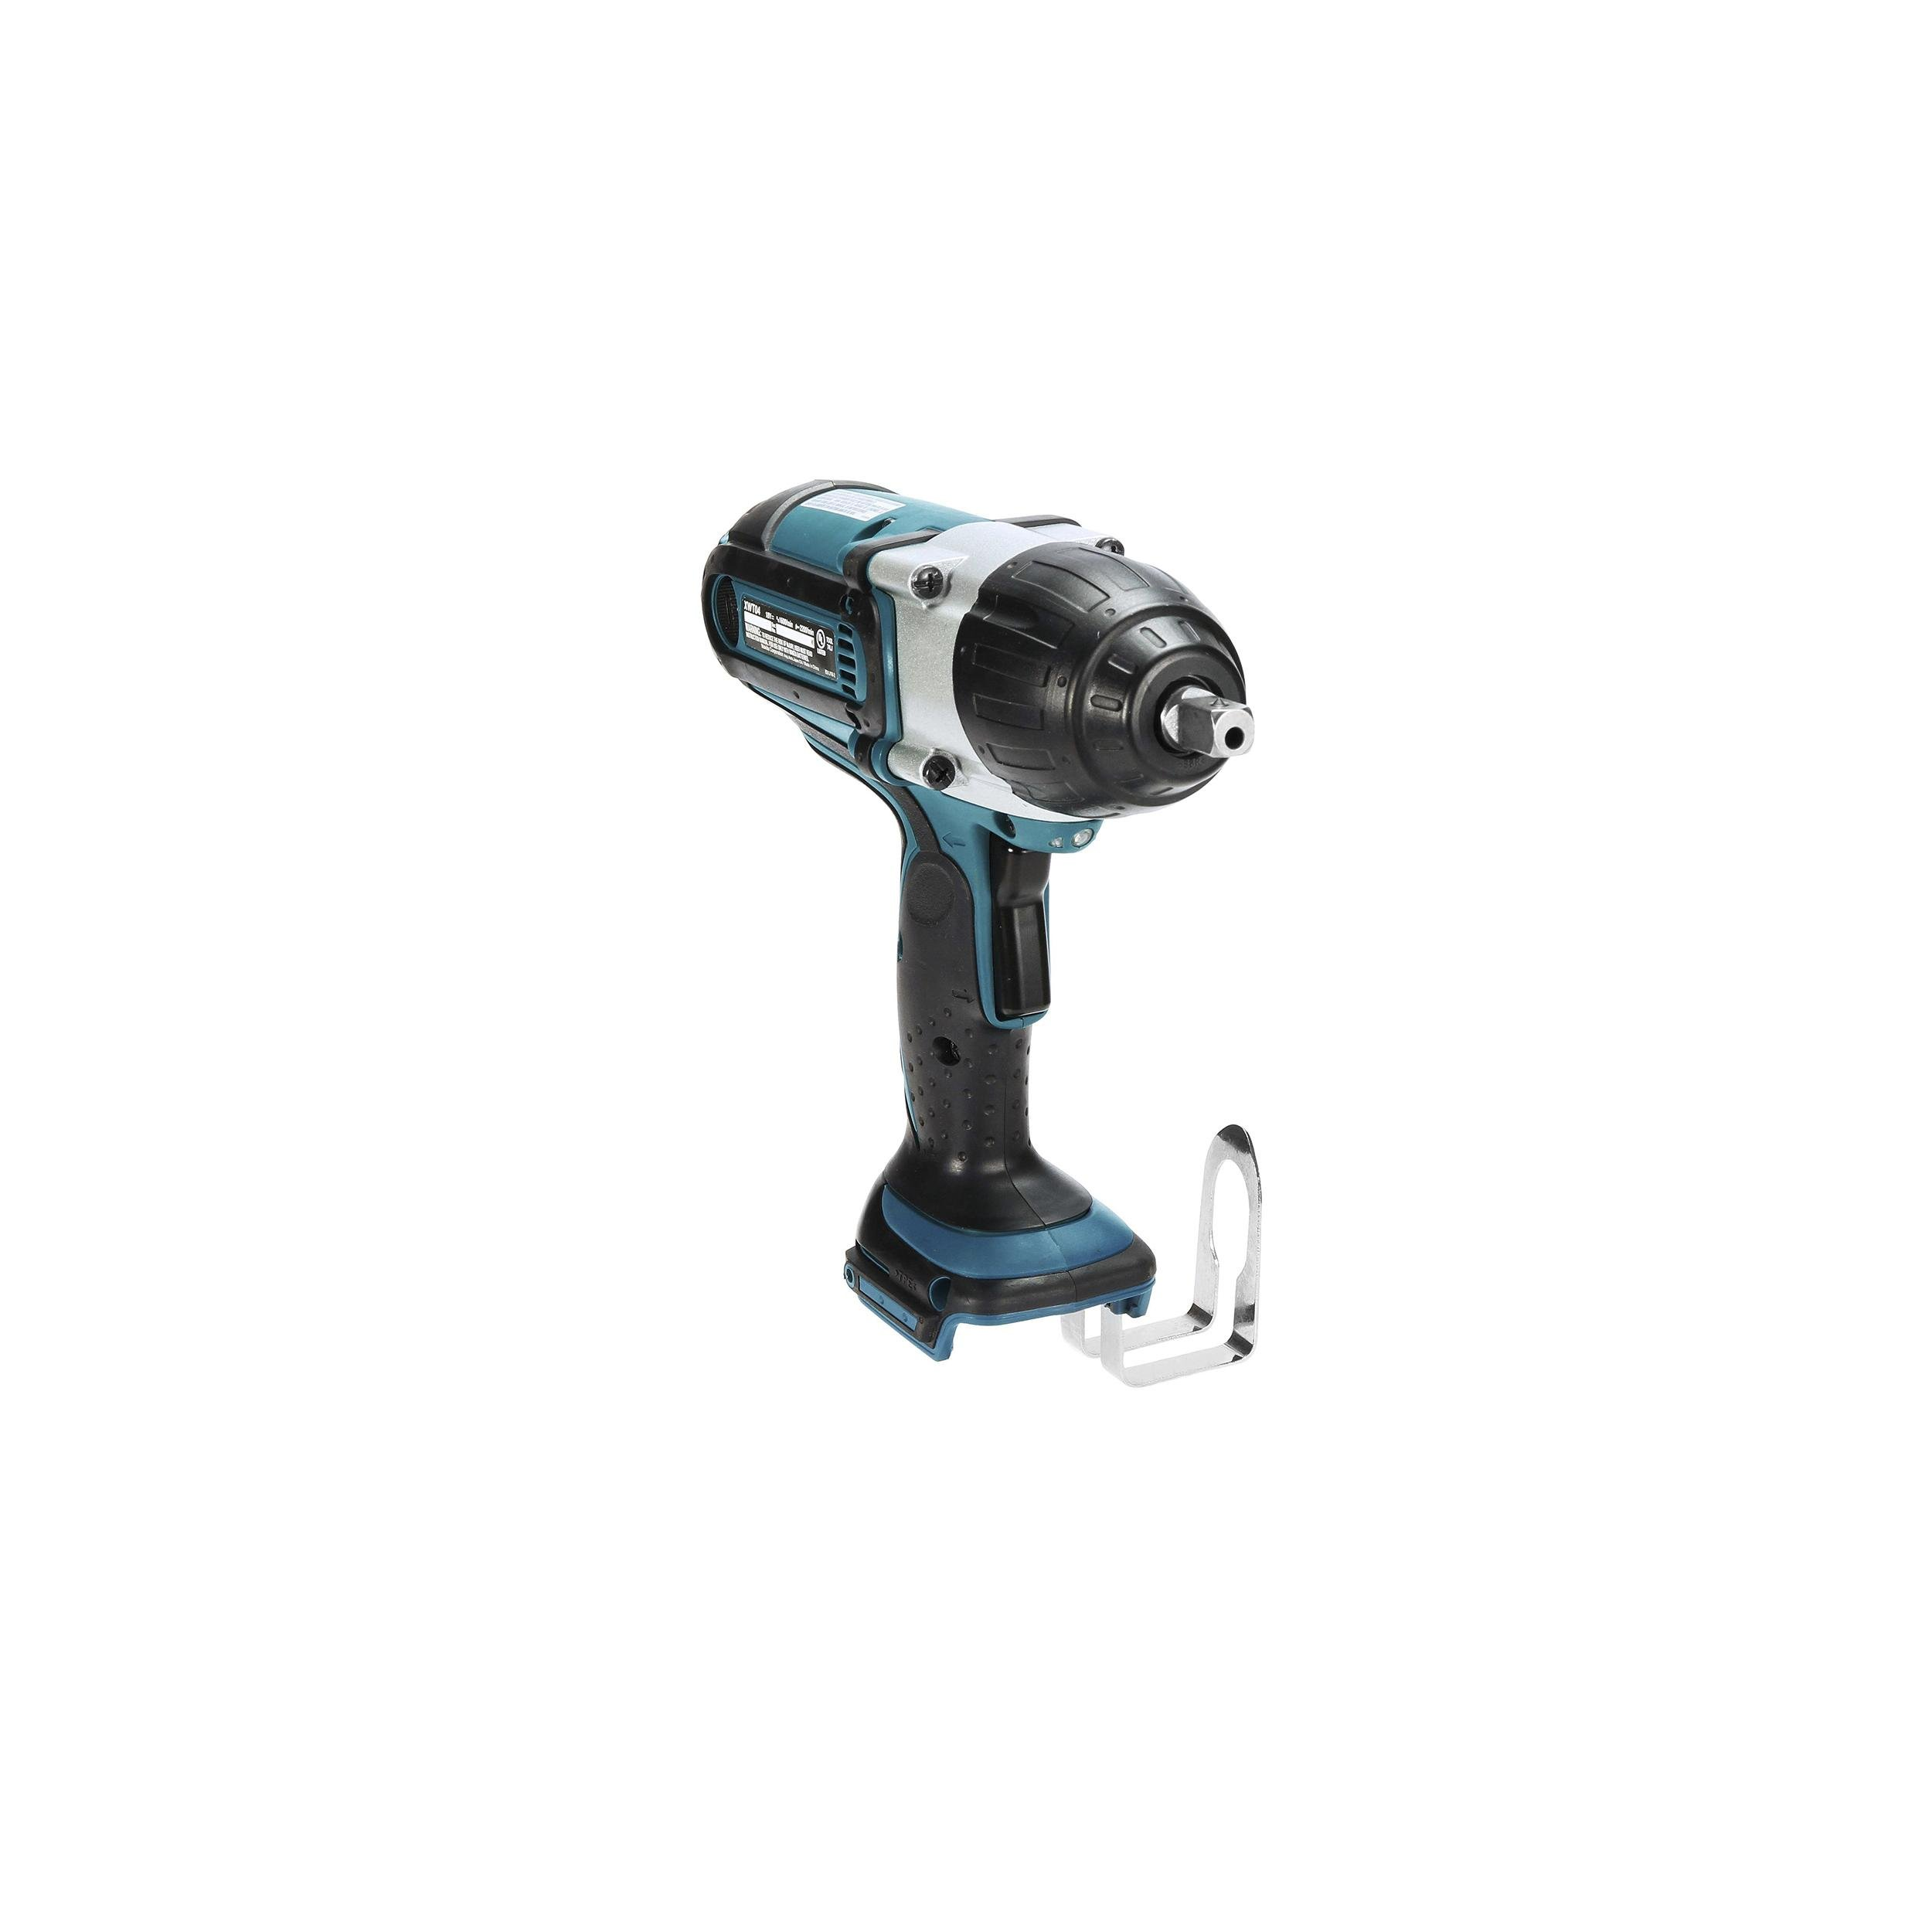 Makita XWT04Z 18-Volt LXT Lithium-Ion 1/2-Inch High Torque Impact Wrench (Tool Only, No Battery) by Makita (Image #2)